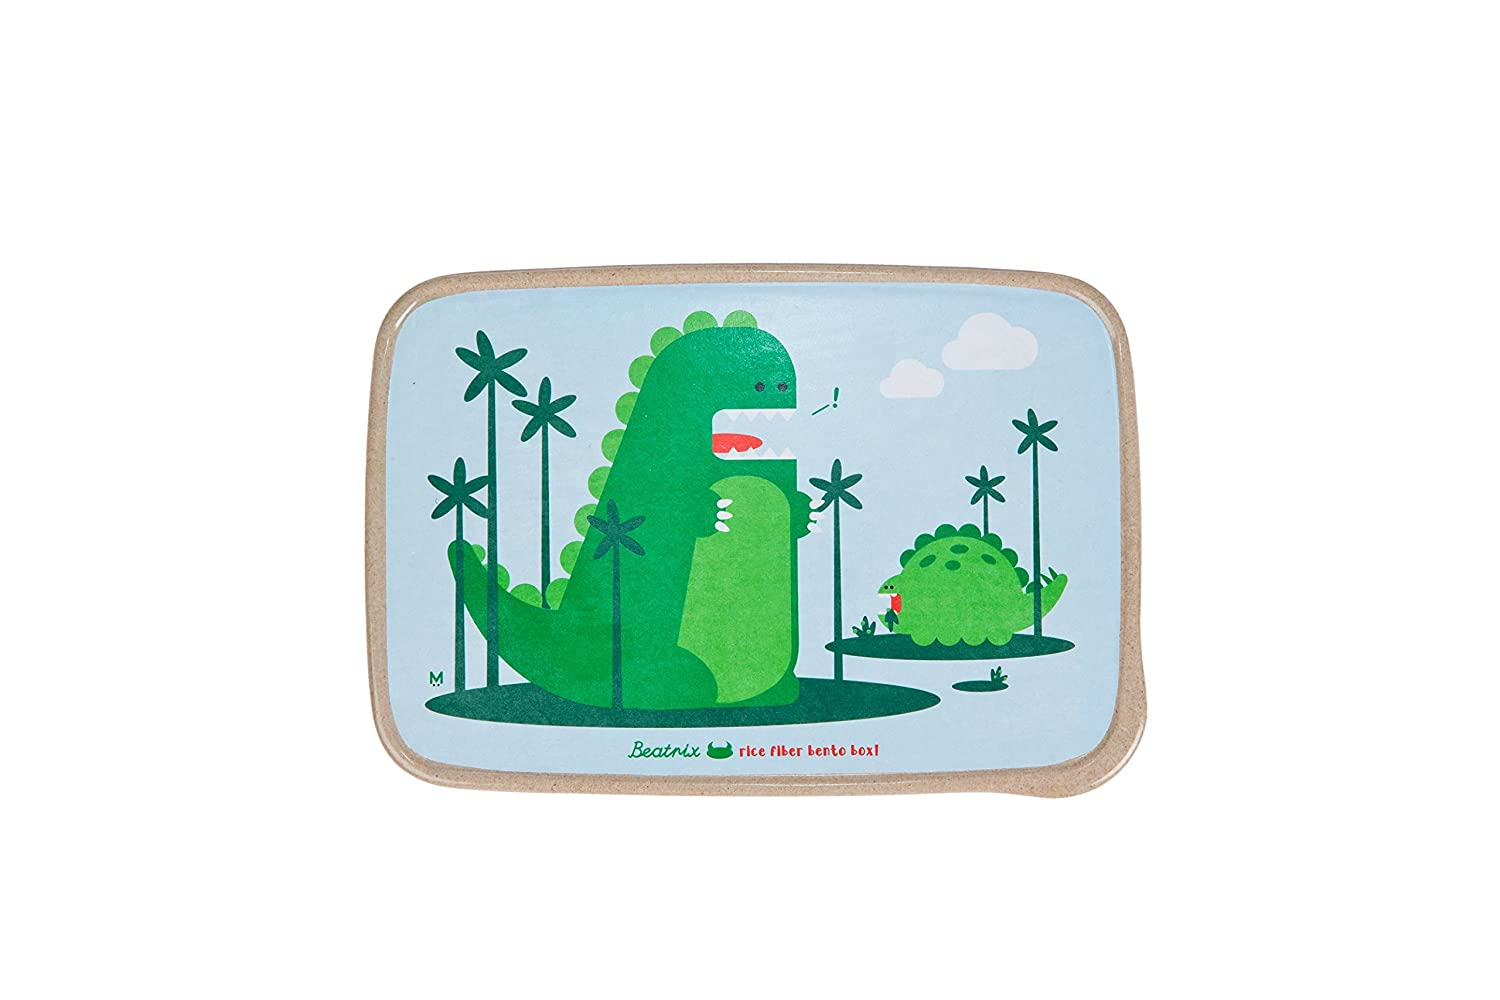 Beatrix New York Rice Fiber Bento Box: Percival and Alister (Dinos), Green, One Size by Beatrix New York   B01CI24CJW